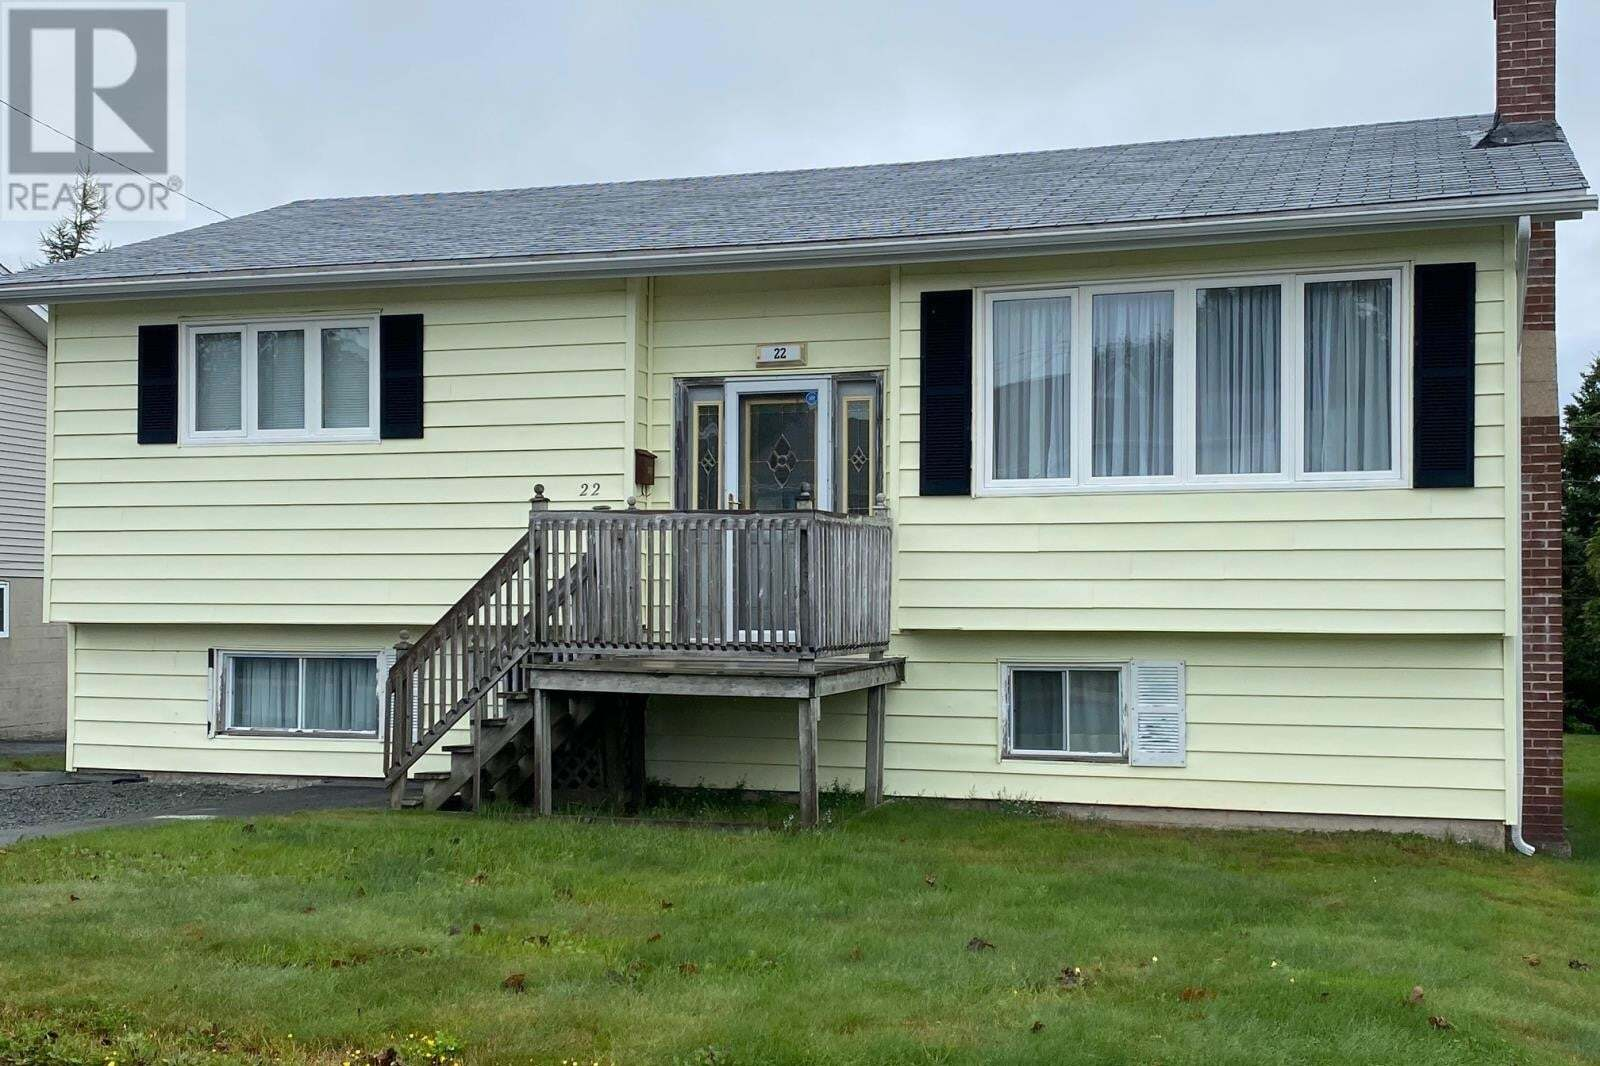 House for sale at 22 Donovan St Mt. Pearl Newfoundland - MLS: 1221149